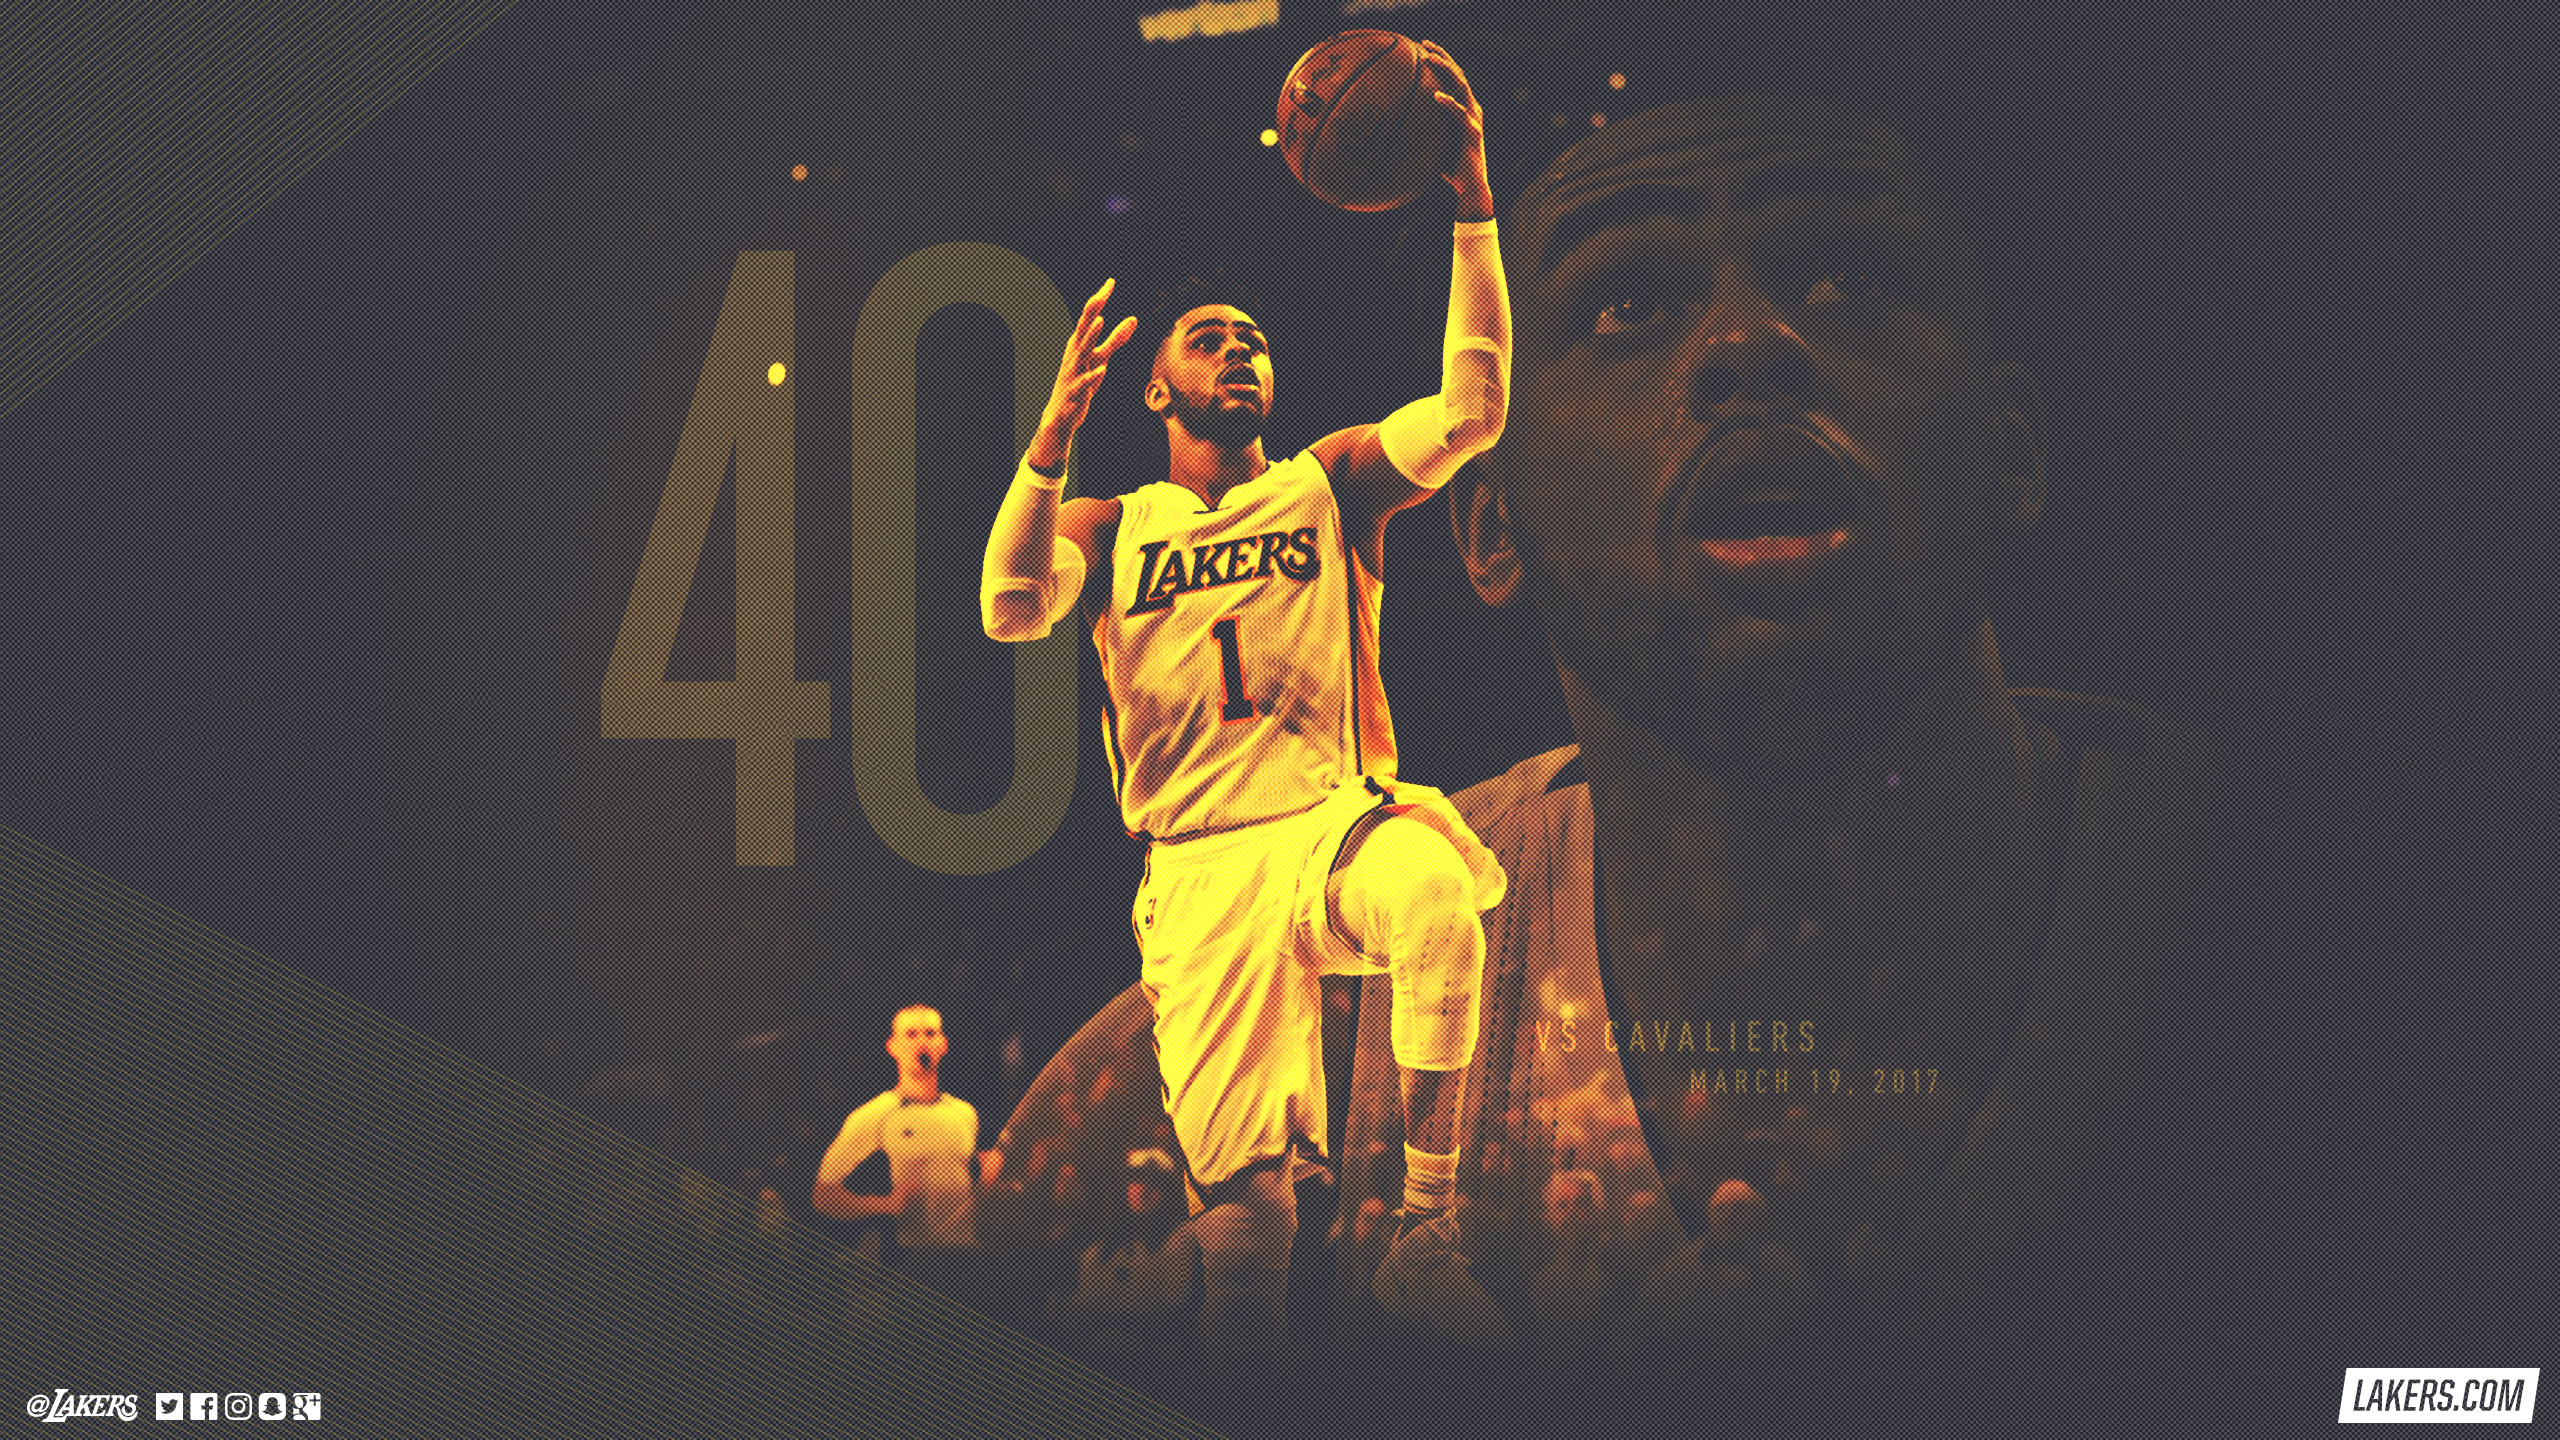 Lakers wallpapers 77 images 2560x1350 la lakers wallpapers hd 42 wallpapers voltagebd Gallery